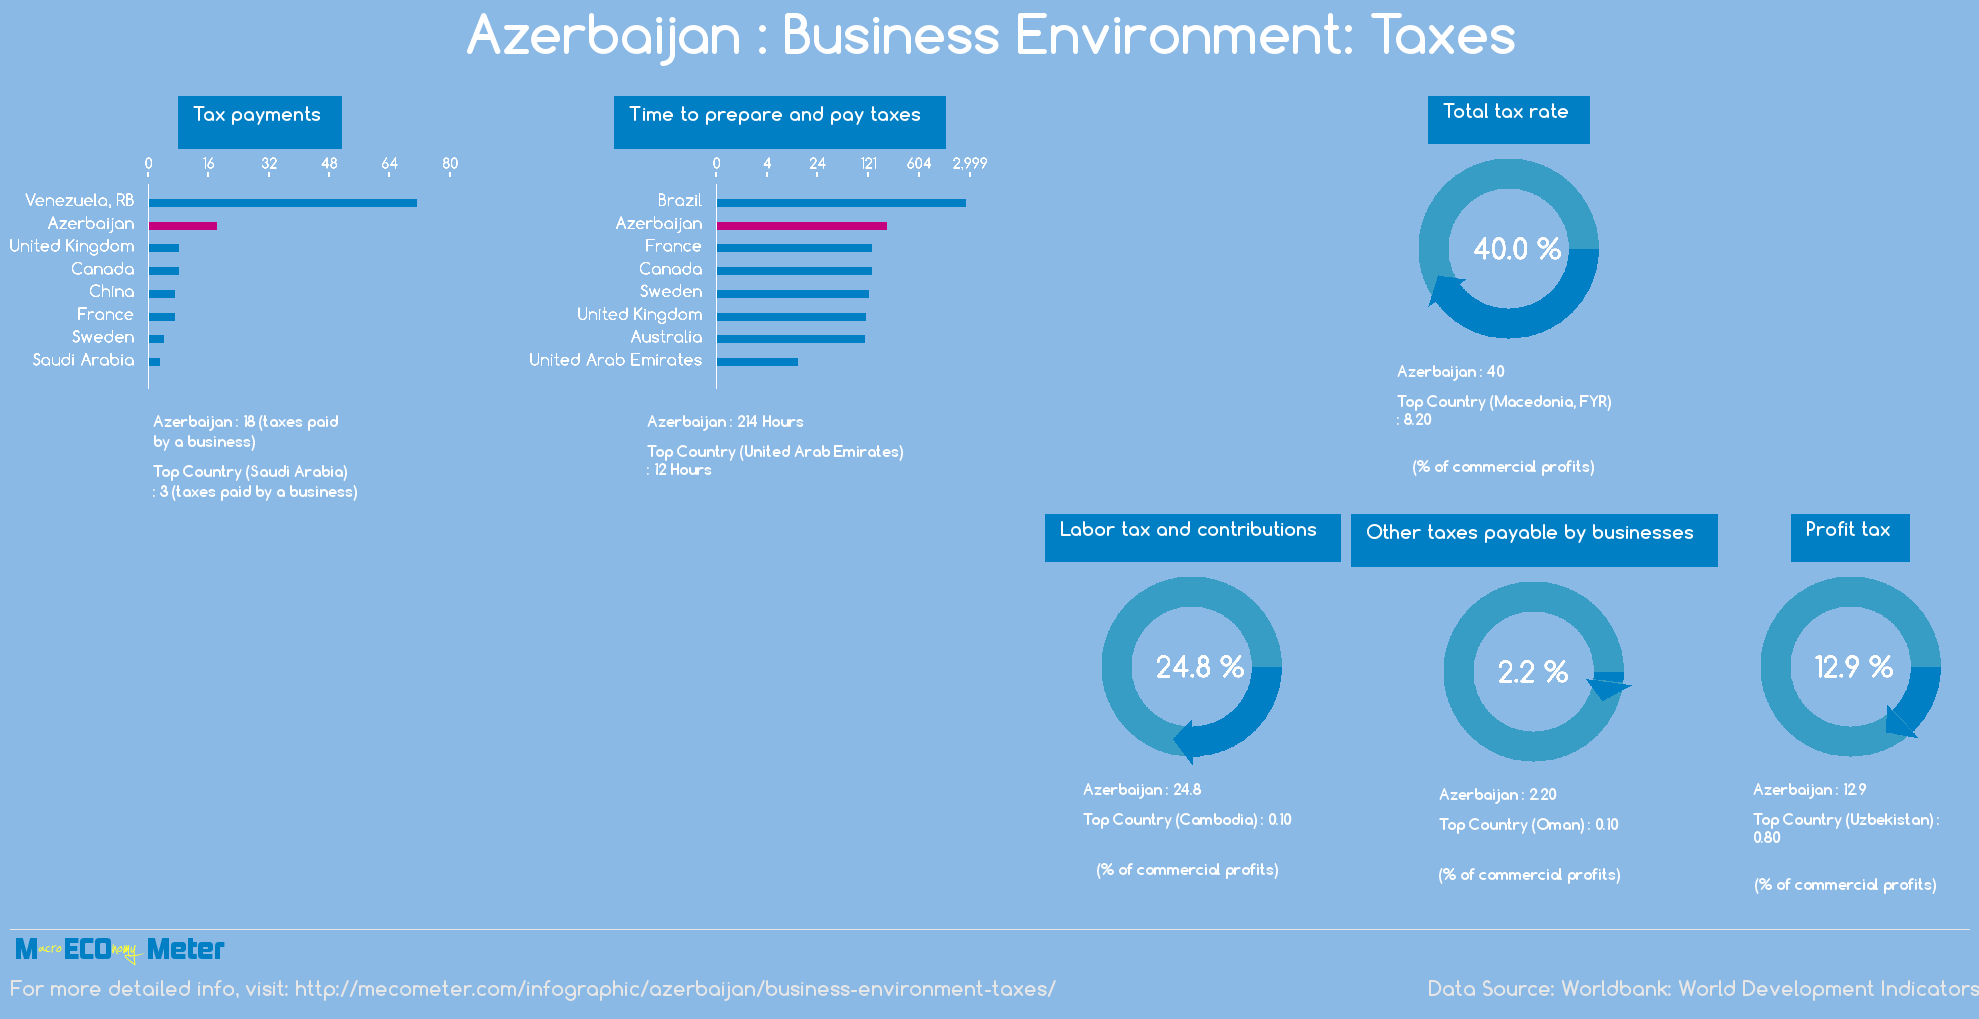 Azerbaijan : Business Environment: Taxes